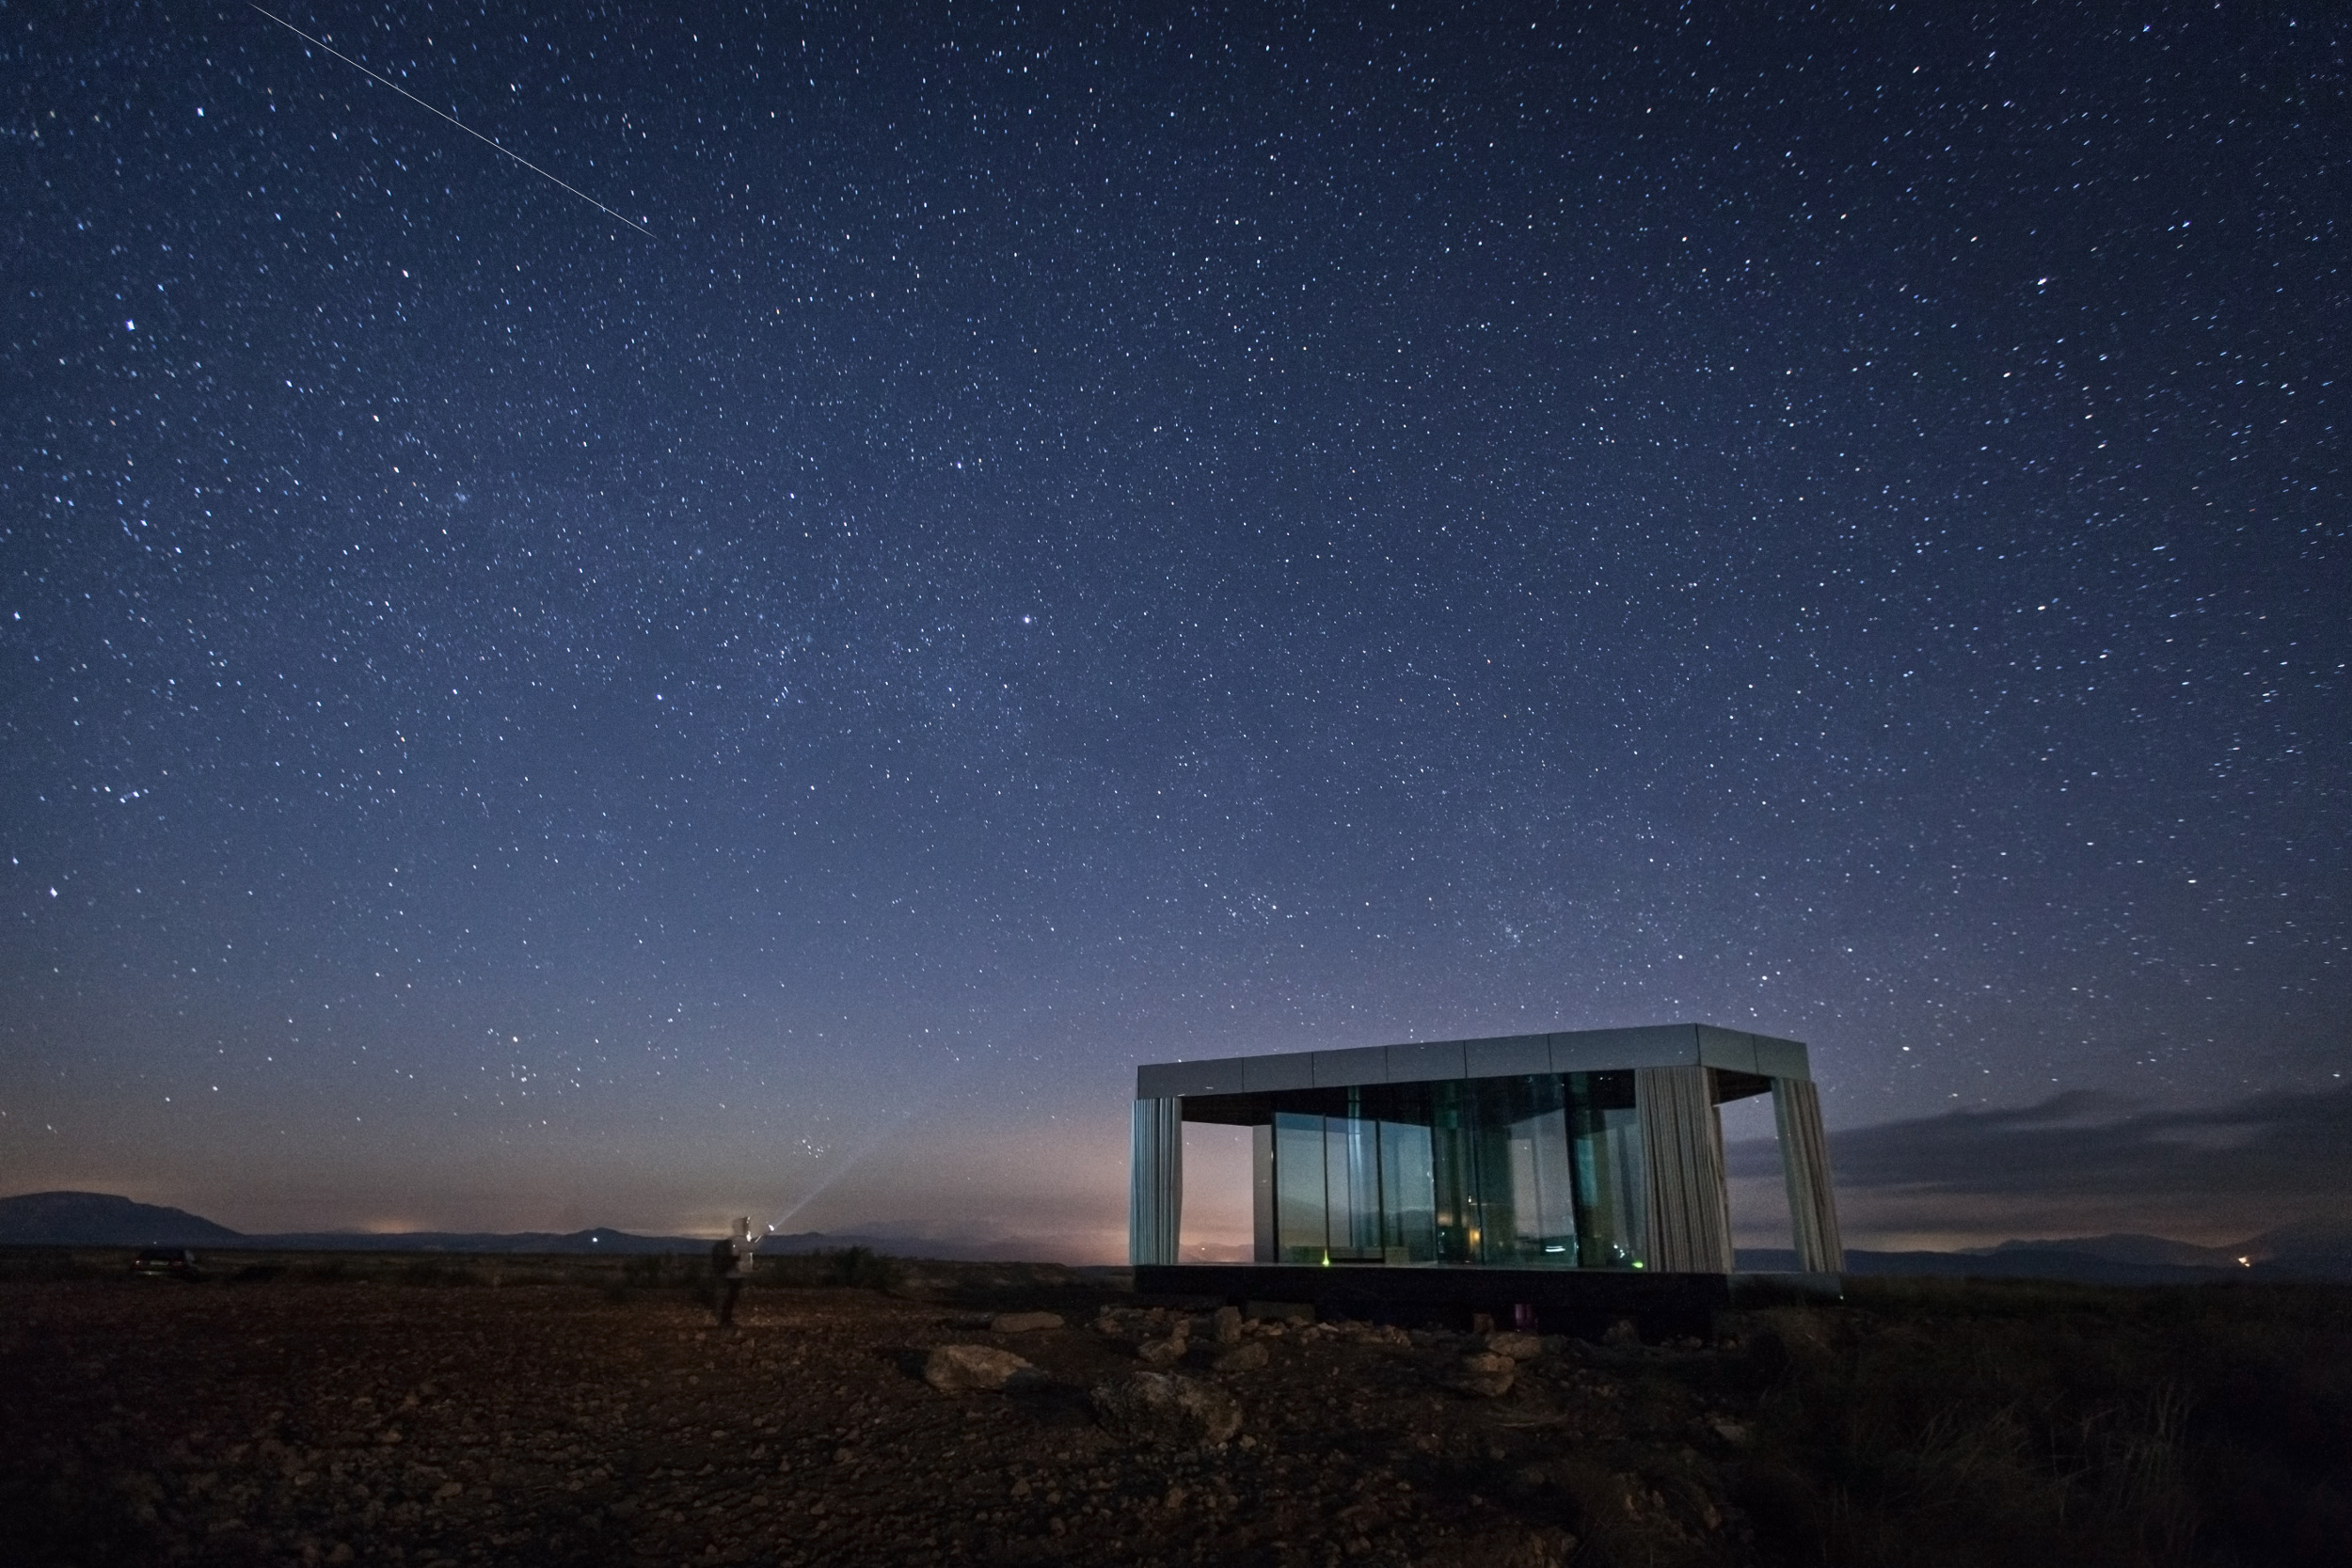 Visitors can gaze up at the stars from the bedroom in the small house.